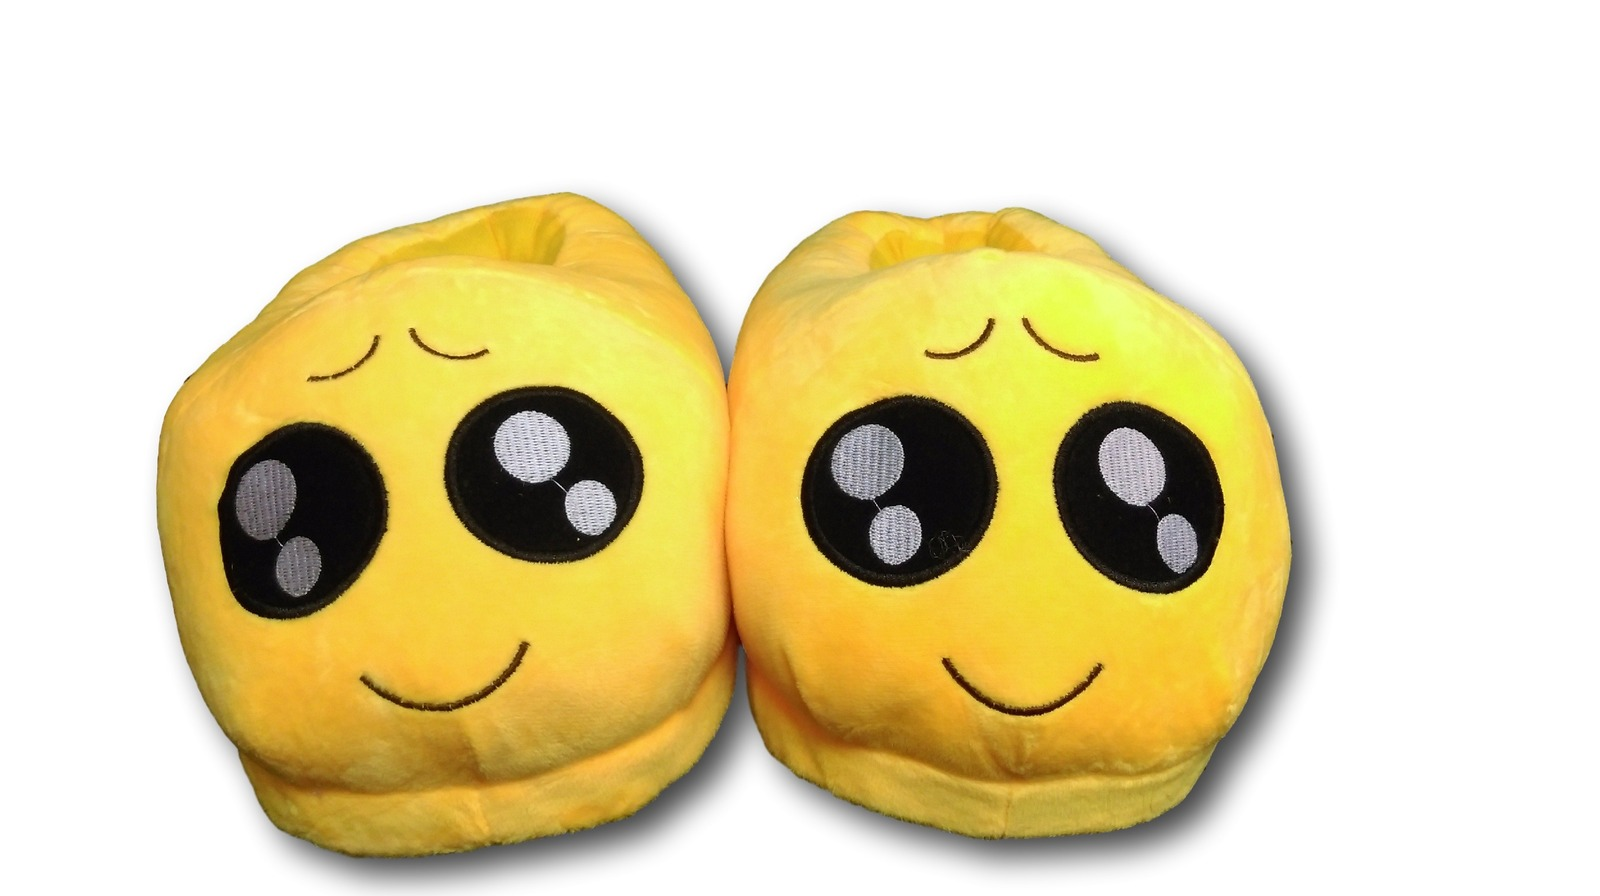 Primary image for Big Eyes Unisex Emoji Plush Home Indoor Pair Slippers Soft Comfy Shoes